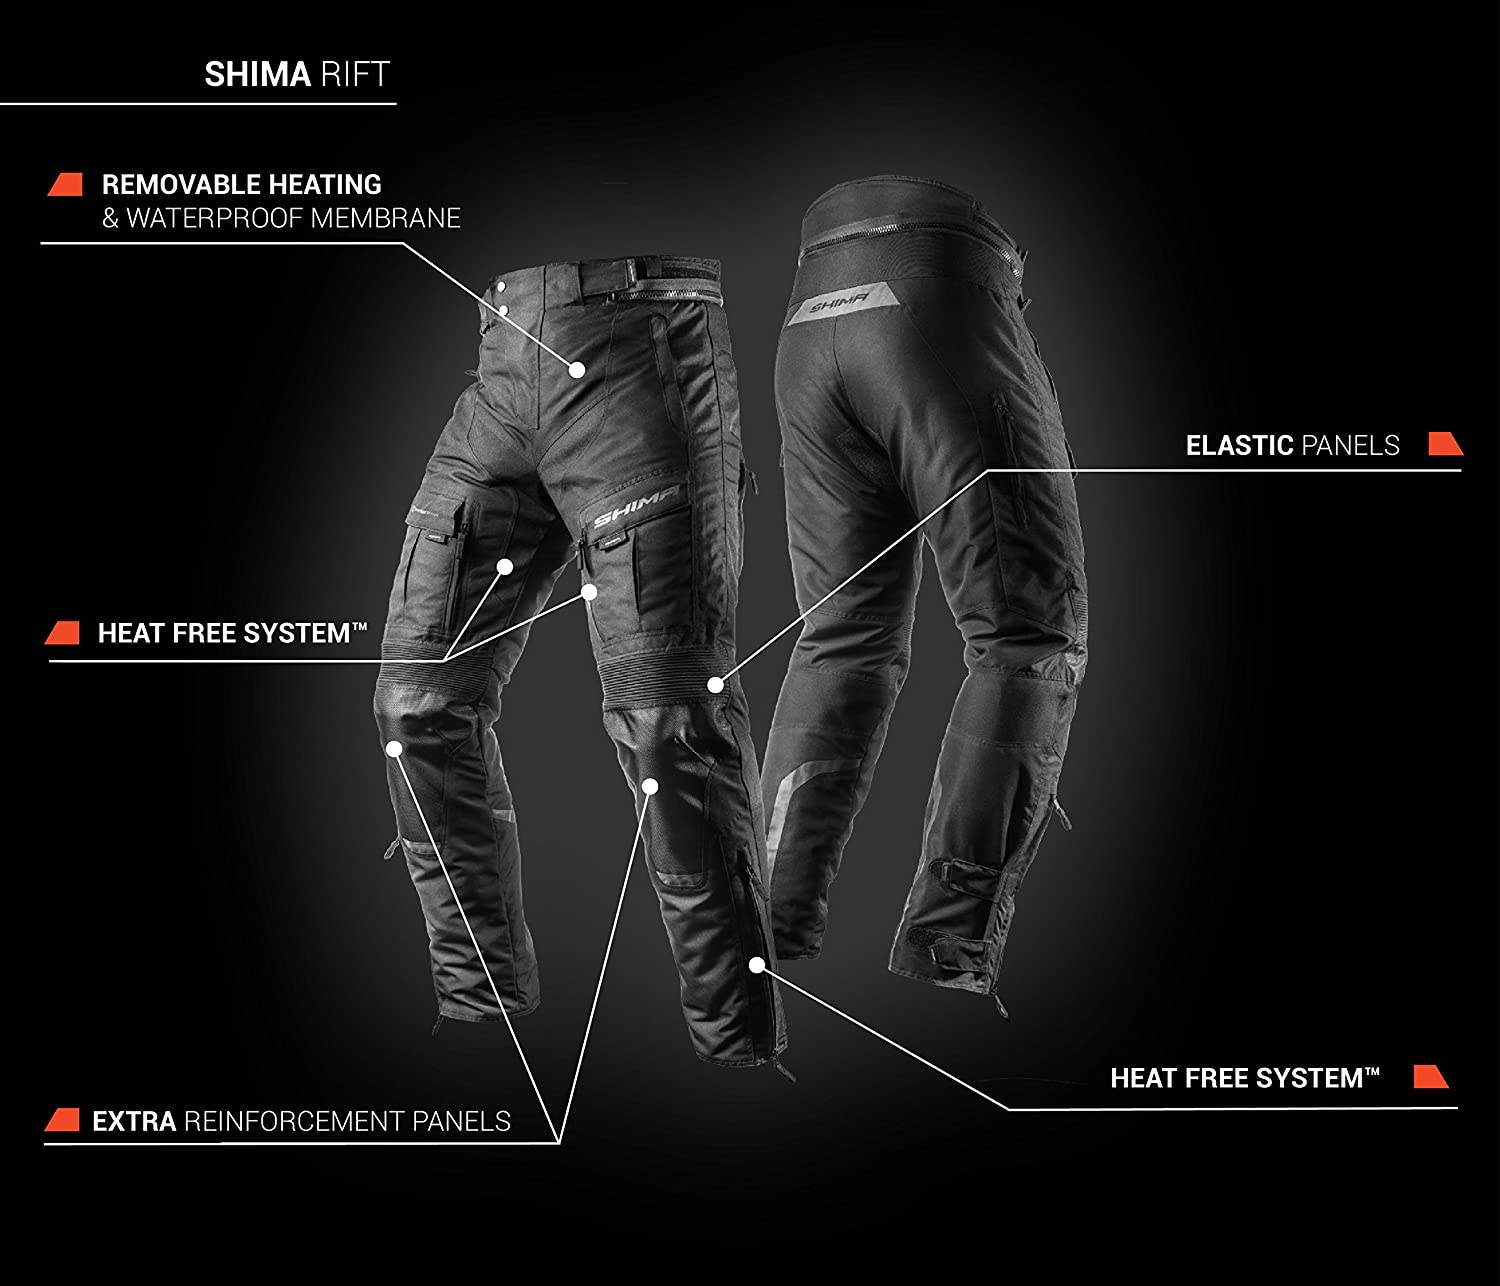 Mens Waterproof Touring X-Shell Protectors Motorcycle Pants with Armor SHIMA RIFT TROUSERS M, Black S-3XL